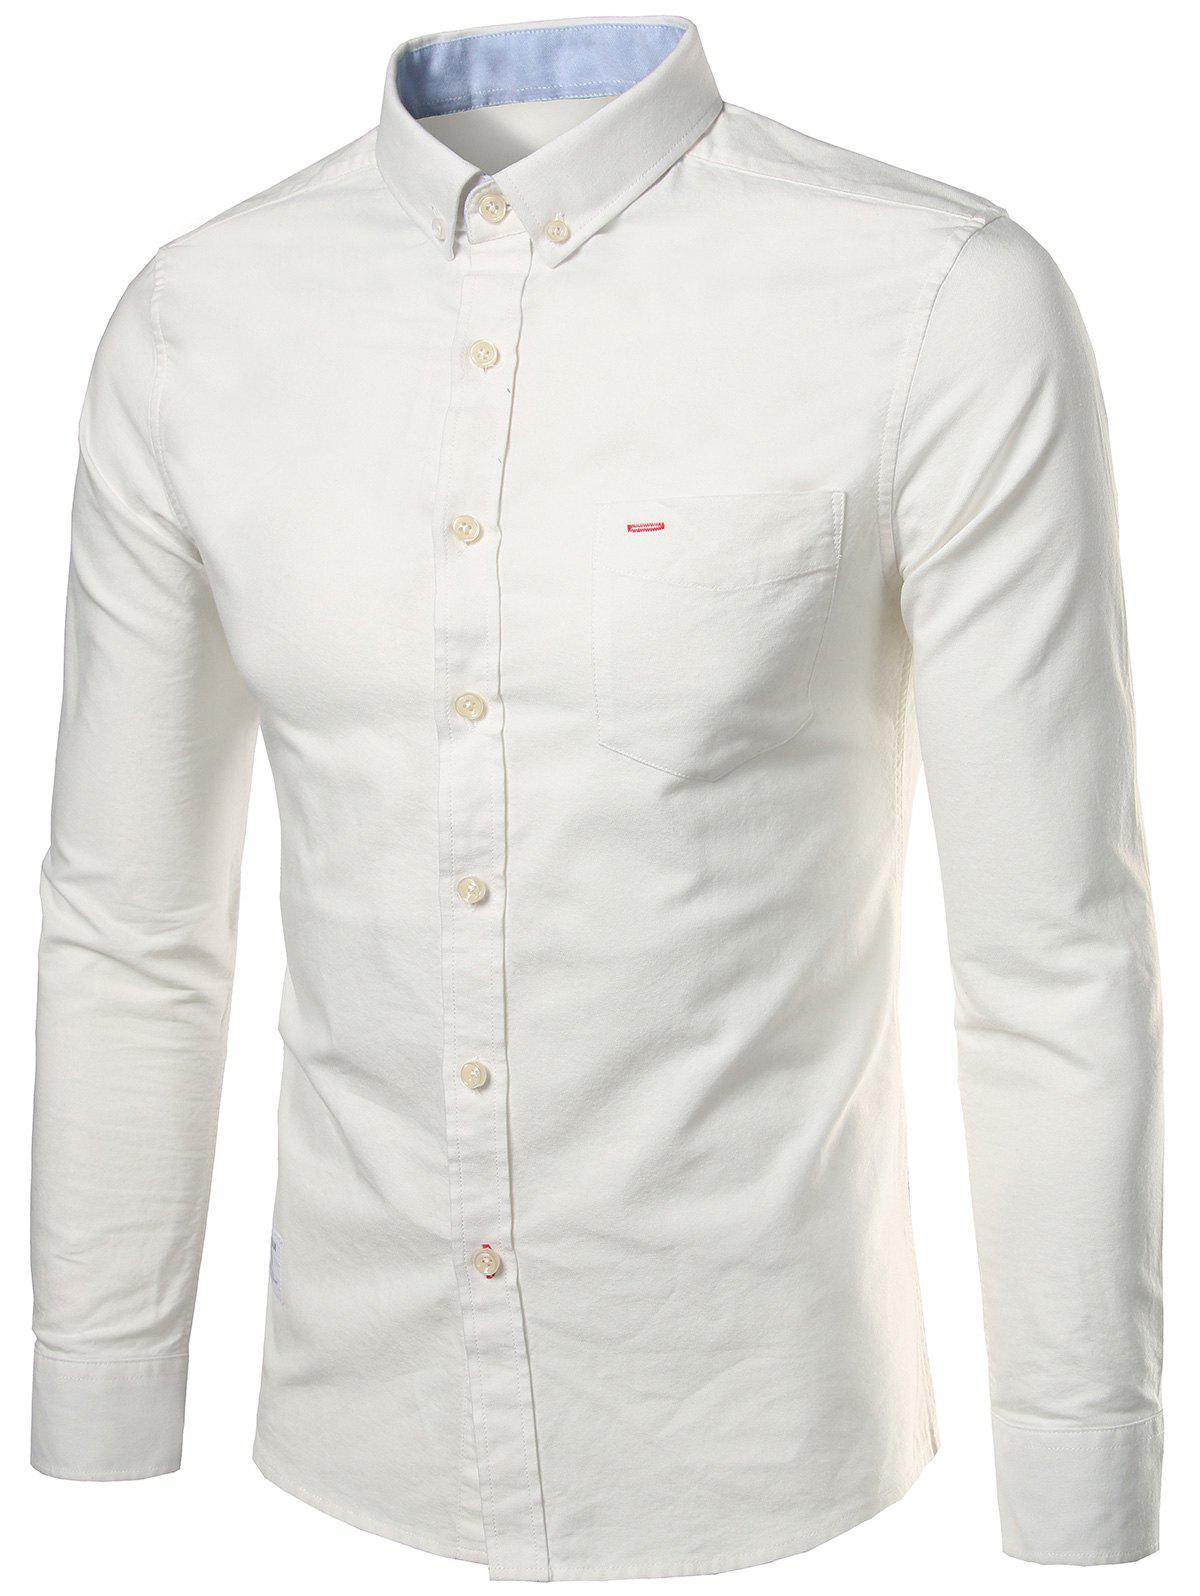 Long Sleeves Pocket Button Down Shirt - OFF WHITE XL